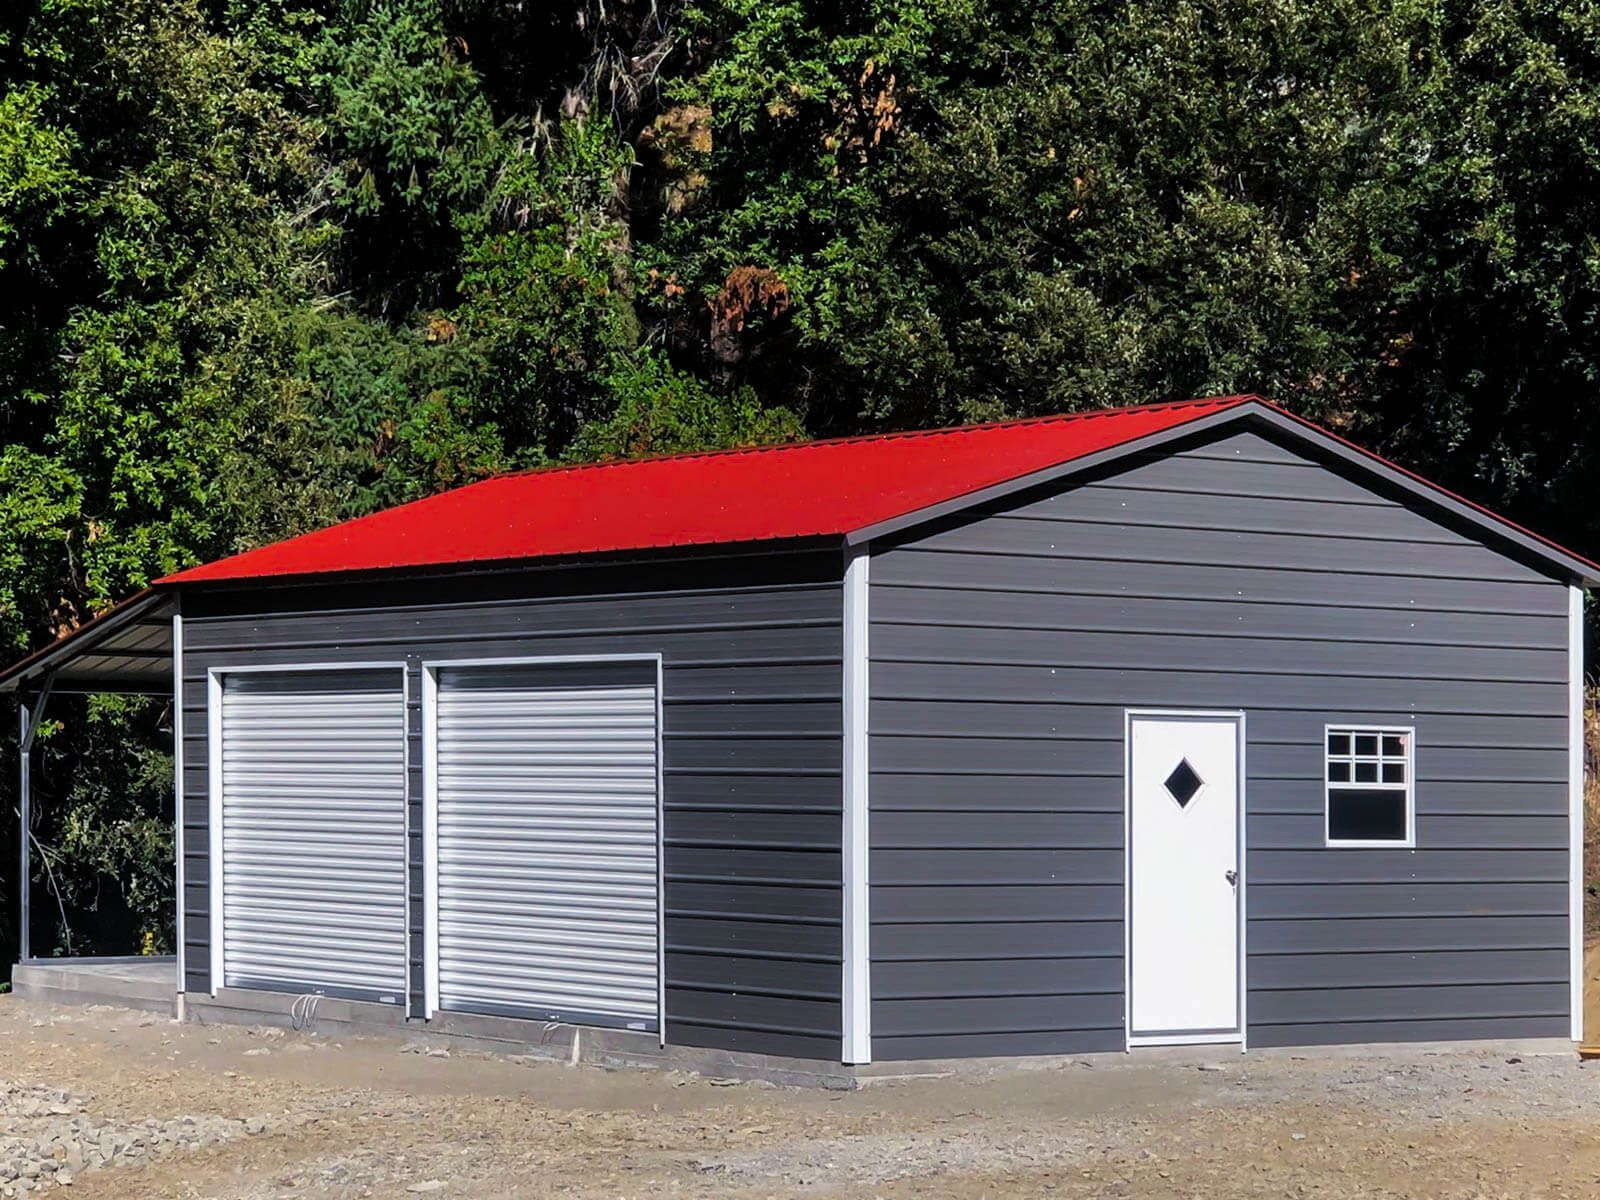 Quaker Gray Red Top Garage With A Porch 20 W X 31 L X 10 H Main Unit 12 Gauge Galvanized Tubinga Frame Vertical Roof10 W X 21 L X 8 Garage Red Top Red Barns